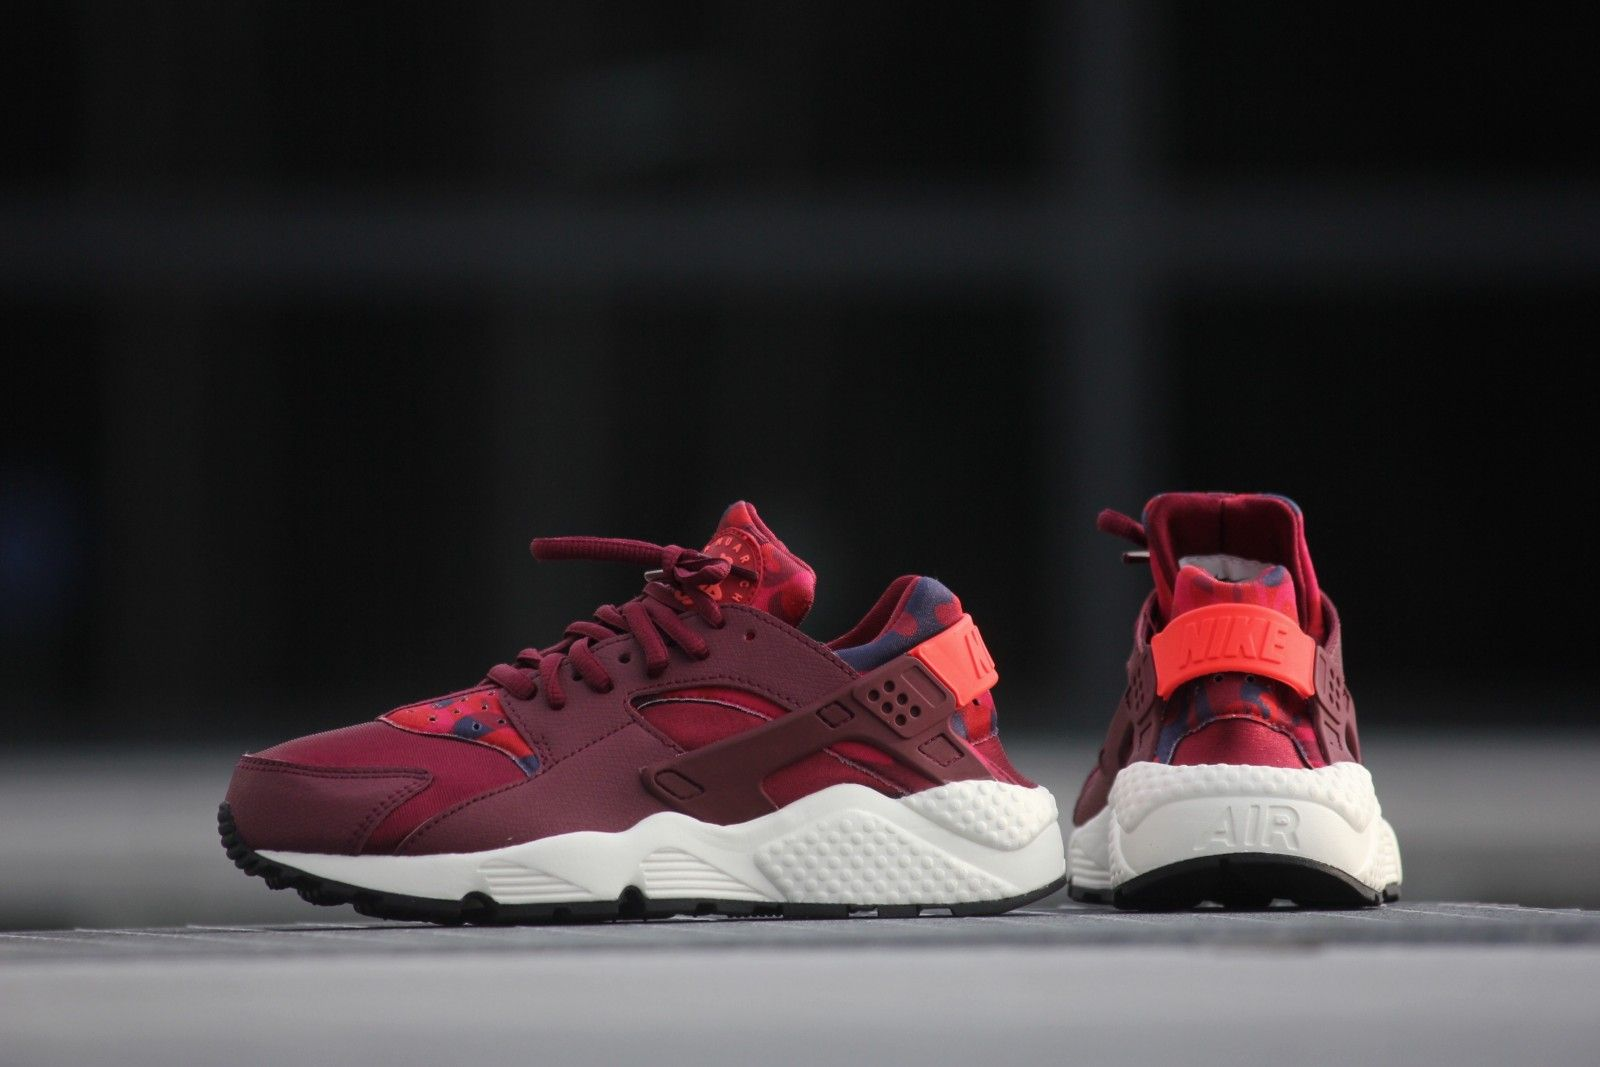 Nike Air Huarache granate